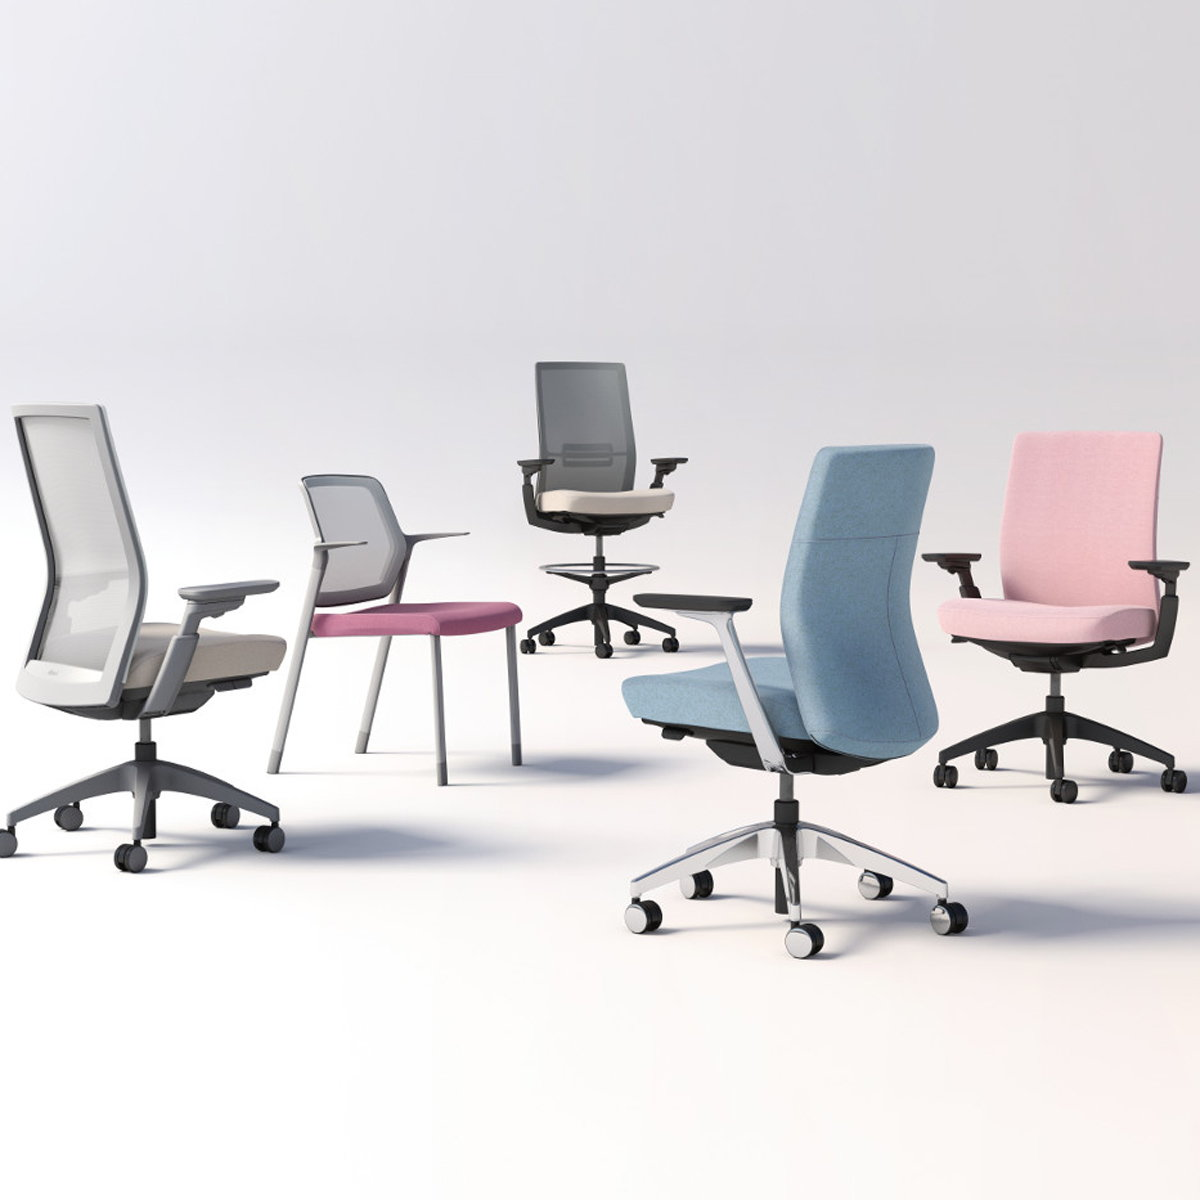 Allsteel Launches Evo Seating Collection